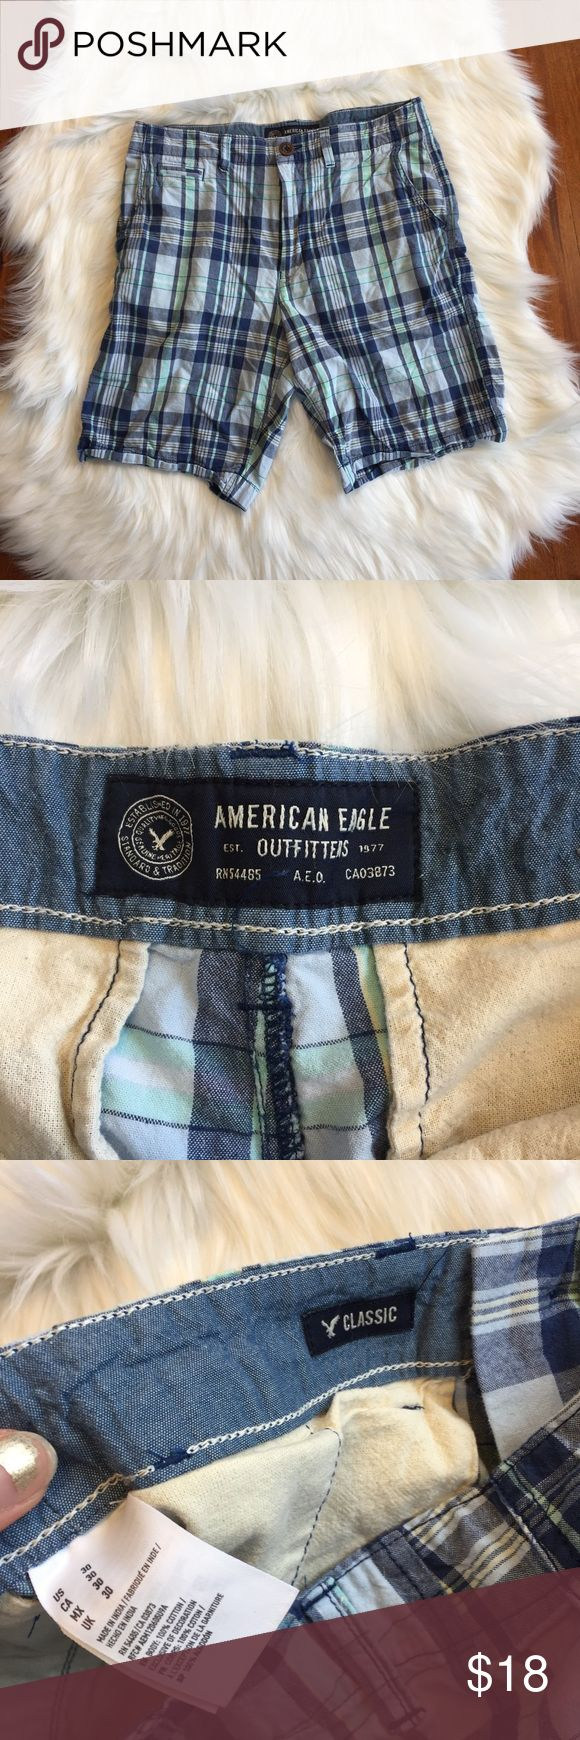 American Eagle Classic Style Plaid Shorts Excellent used condition, only worn a couple of times. All sales final.   🌟No Returns If Item Doesn't Fit - Please Ask For Measurements Instead (Per Posh Rules)  🌟 No Trades 🌟 I Do Not Model  🌟 Bundle 3 Or More Items In My Closet For 20% Off! American Eagle Outfitters Shorts